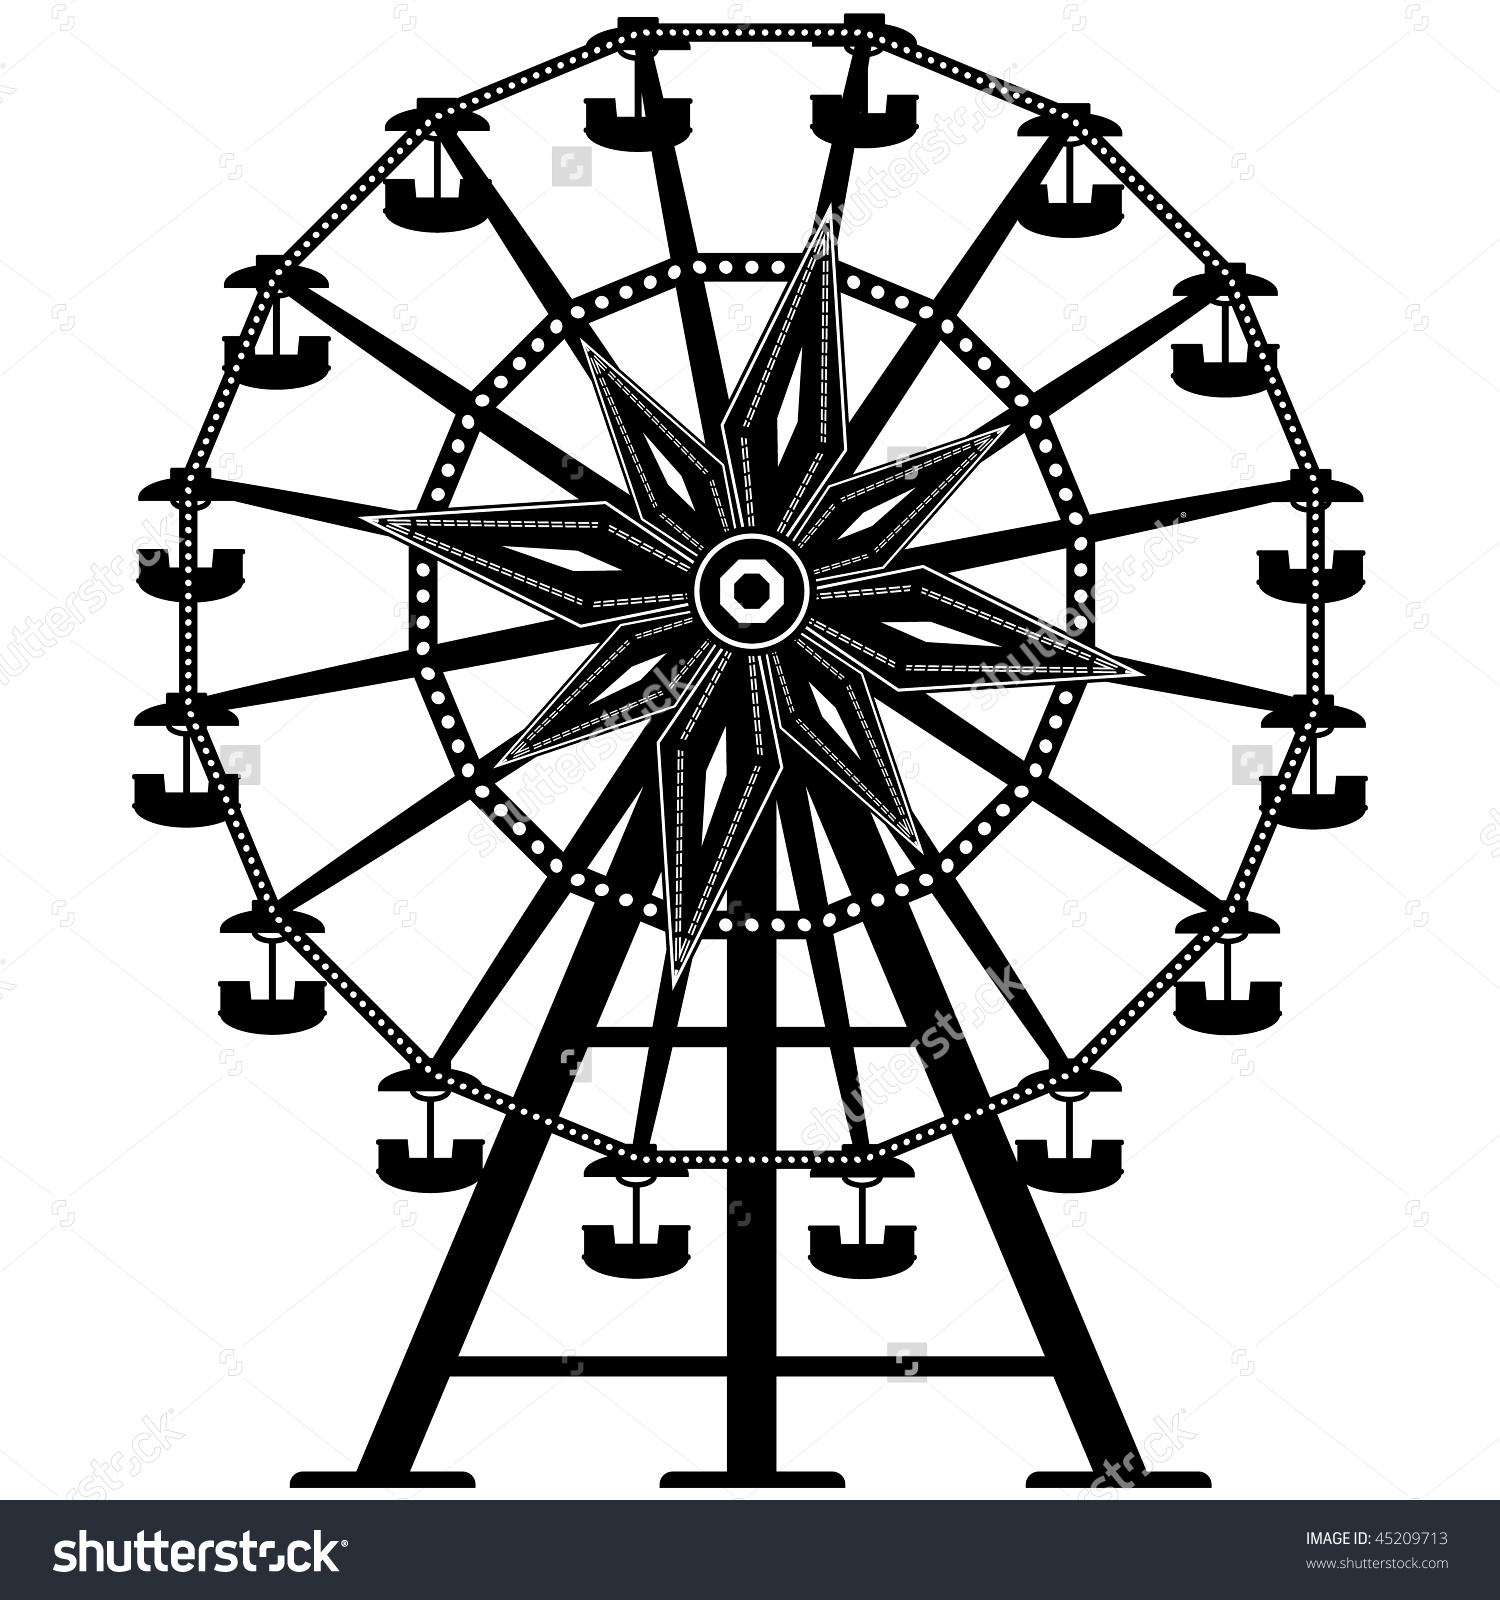 Free Ferris Wheel Silhouette Vector, Download Free Clip Art.